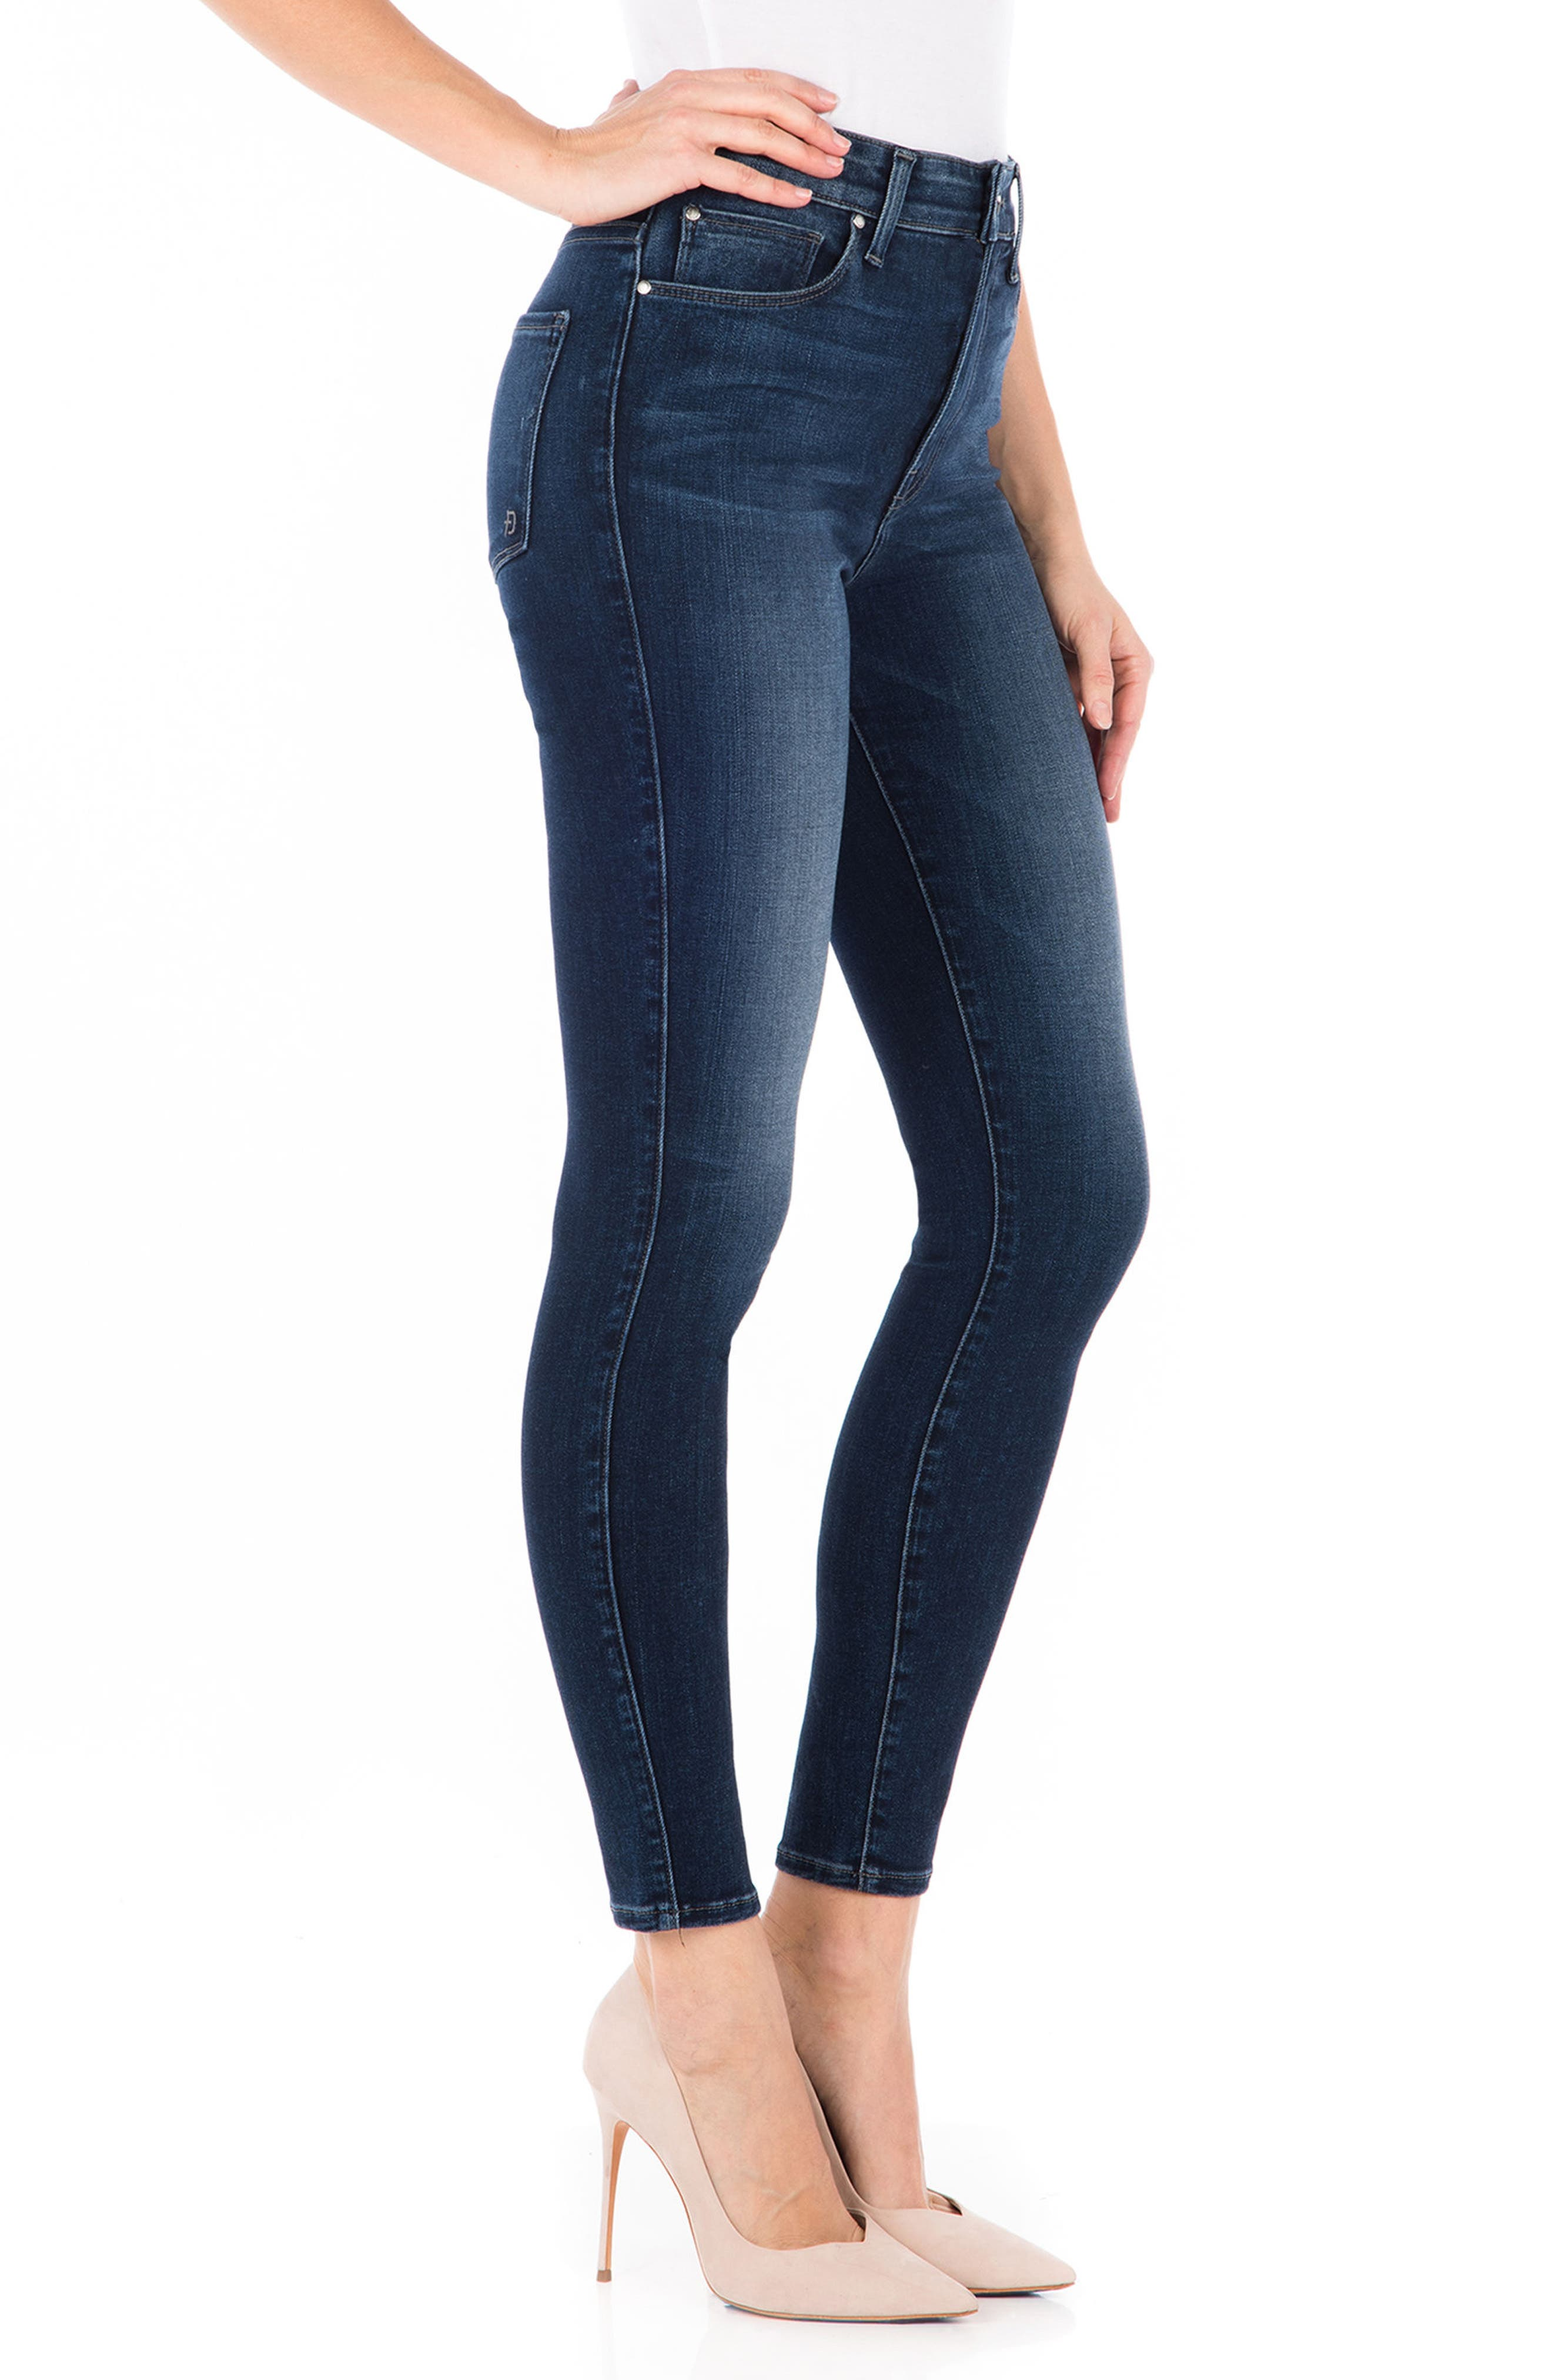 Luna High Waist Skinny Jeans,                             Alternate thumbnail 3, color,                             BLUE SUEDE